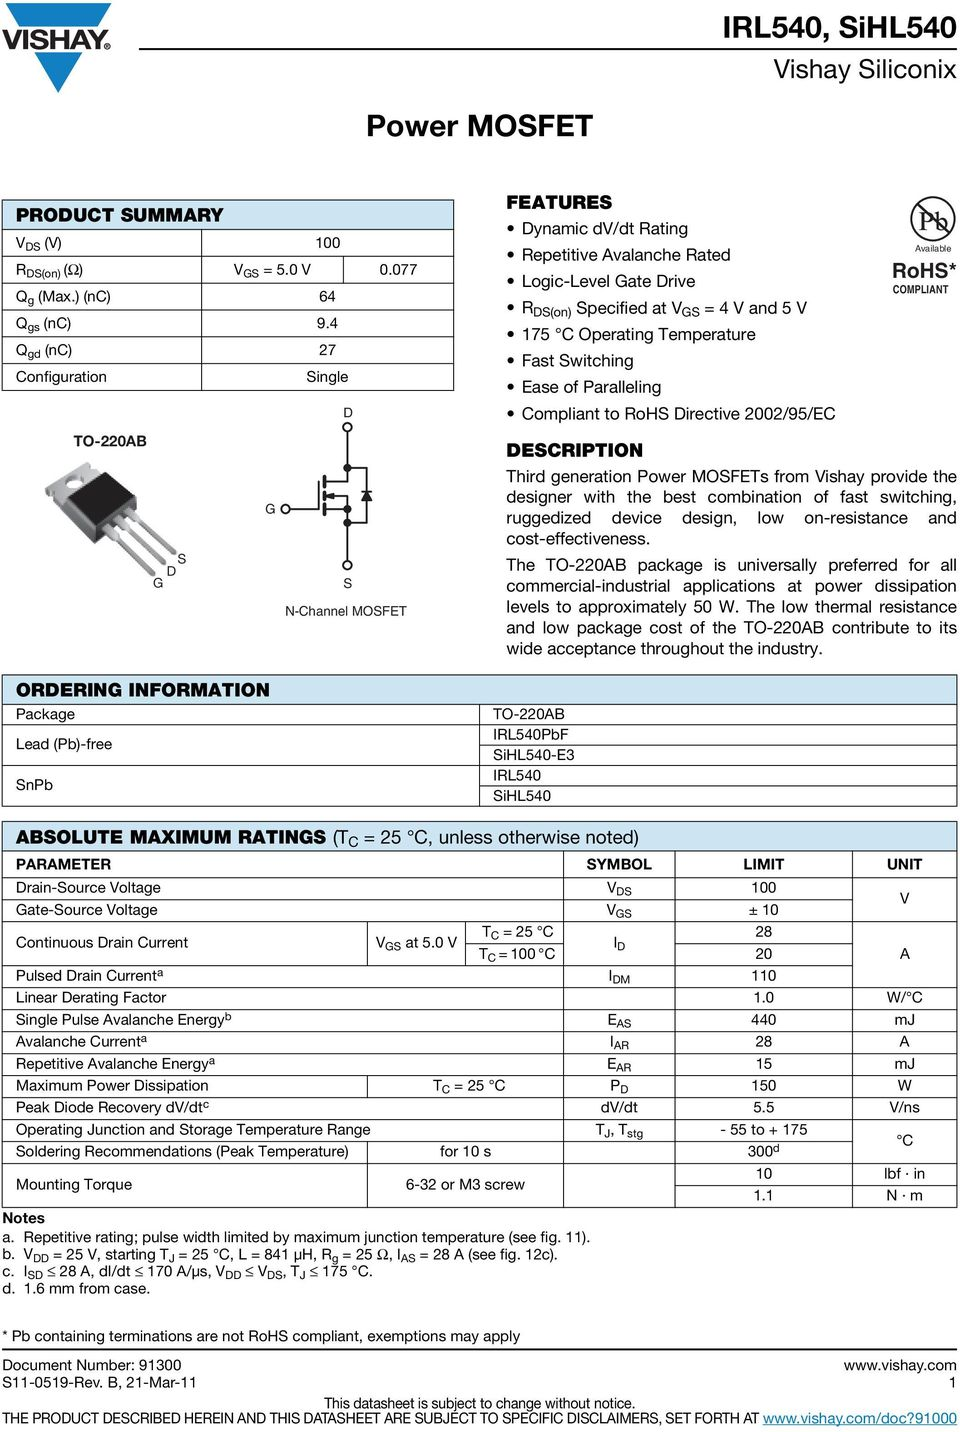 Power Mosfet Features Irl540pbf Sihl540 E3 Irl540 Sihl540 Pdf